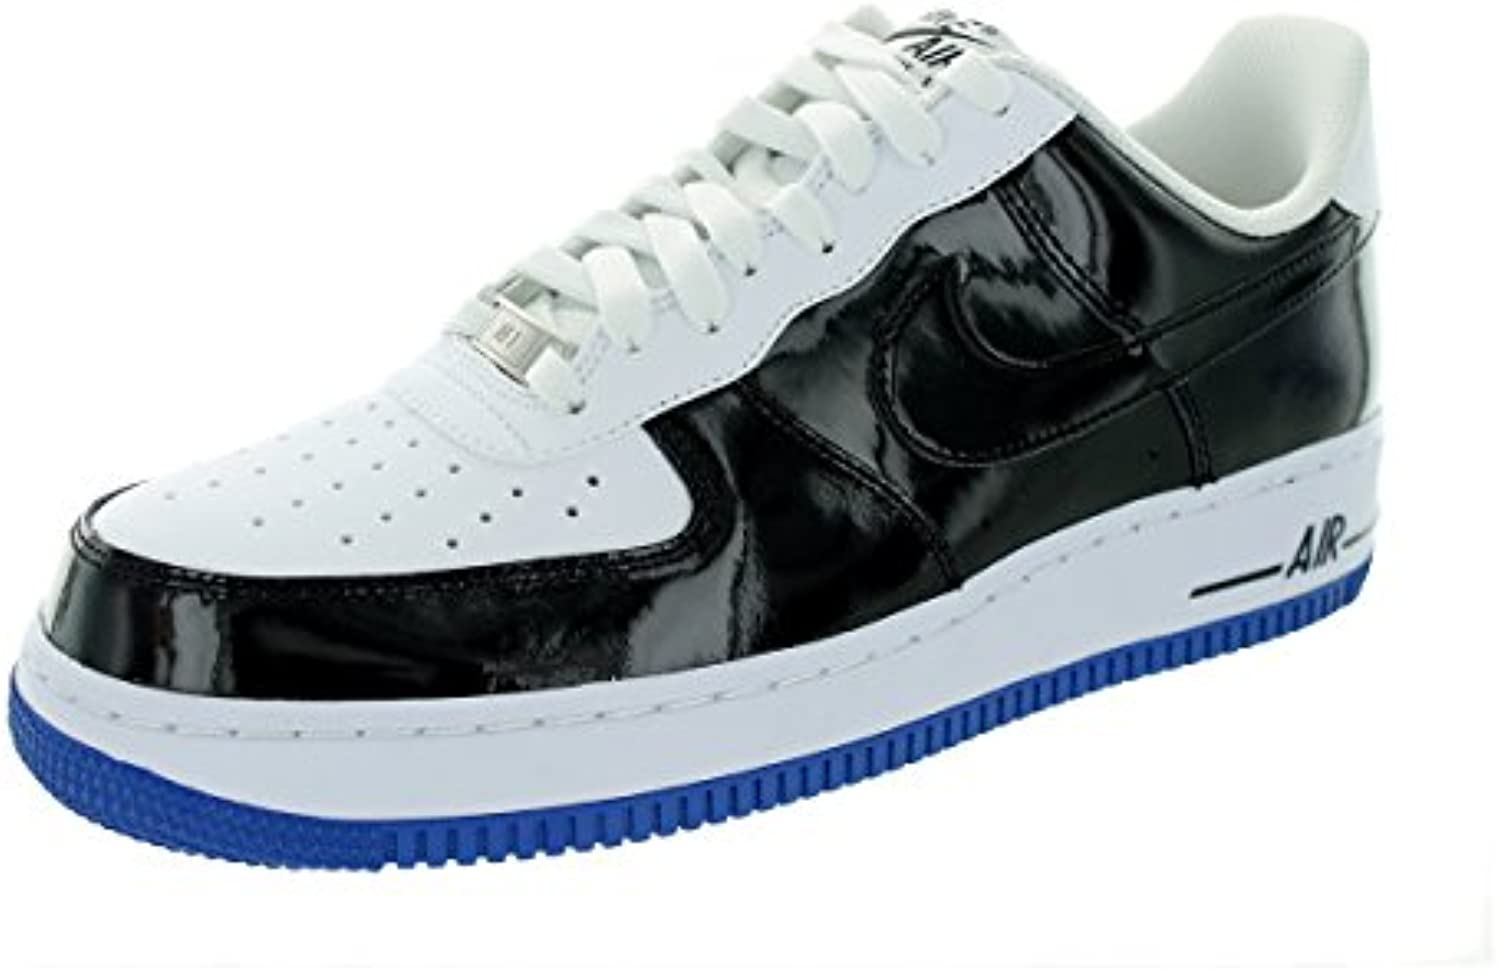 nike air force 1   des des des chaussures de course b004va2j5y parent f9a63c